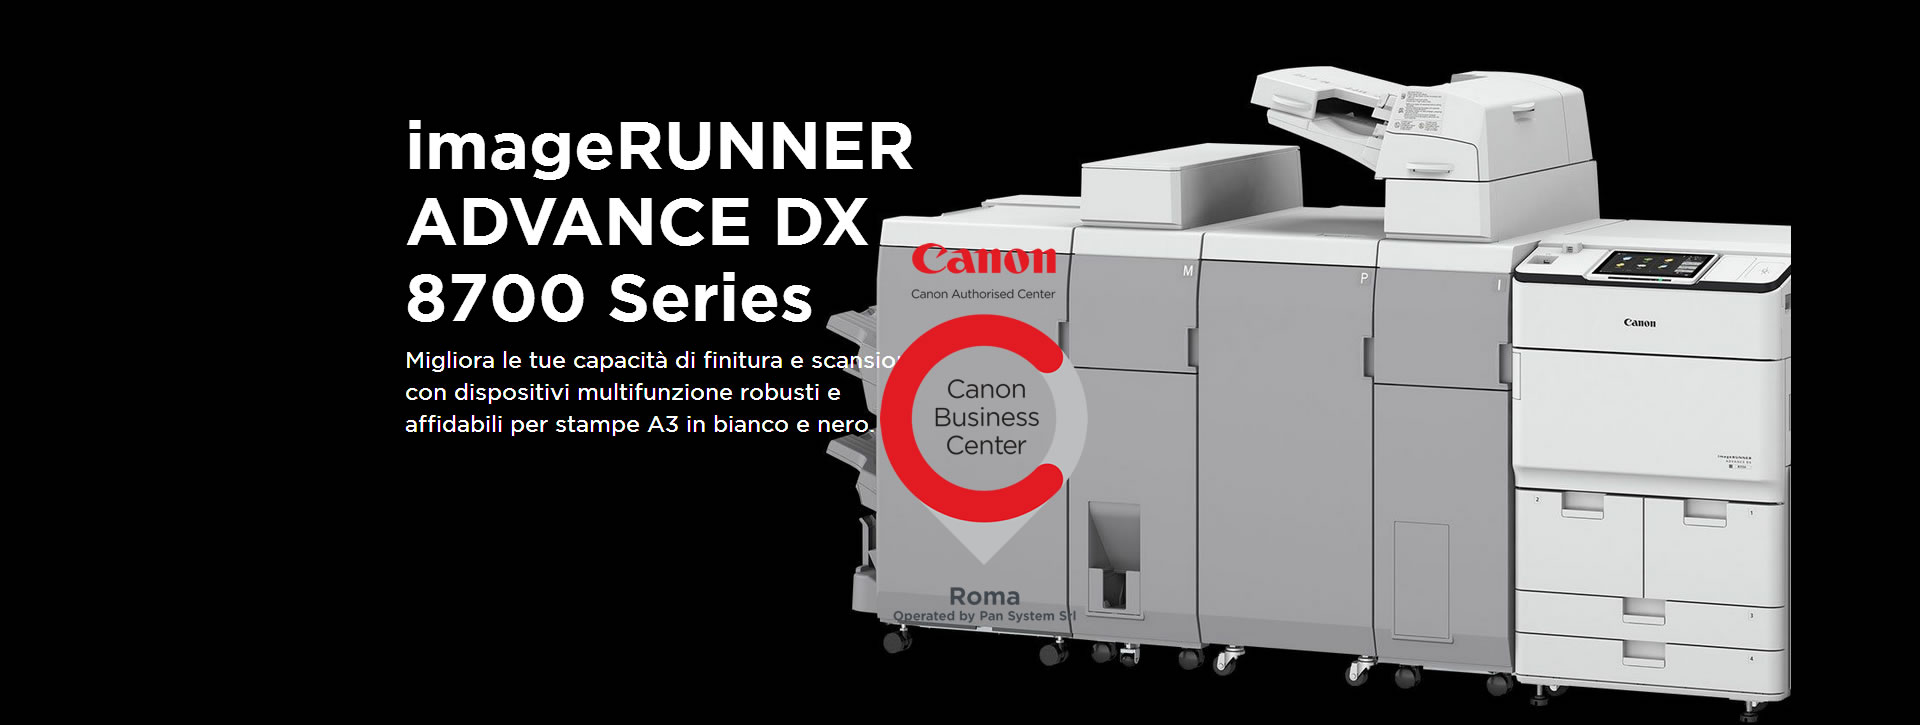 imageRUNNER ADVANCE DX 8700